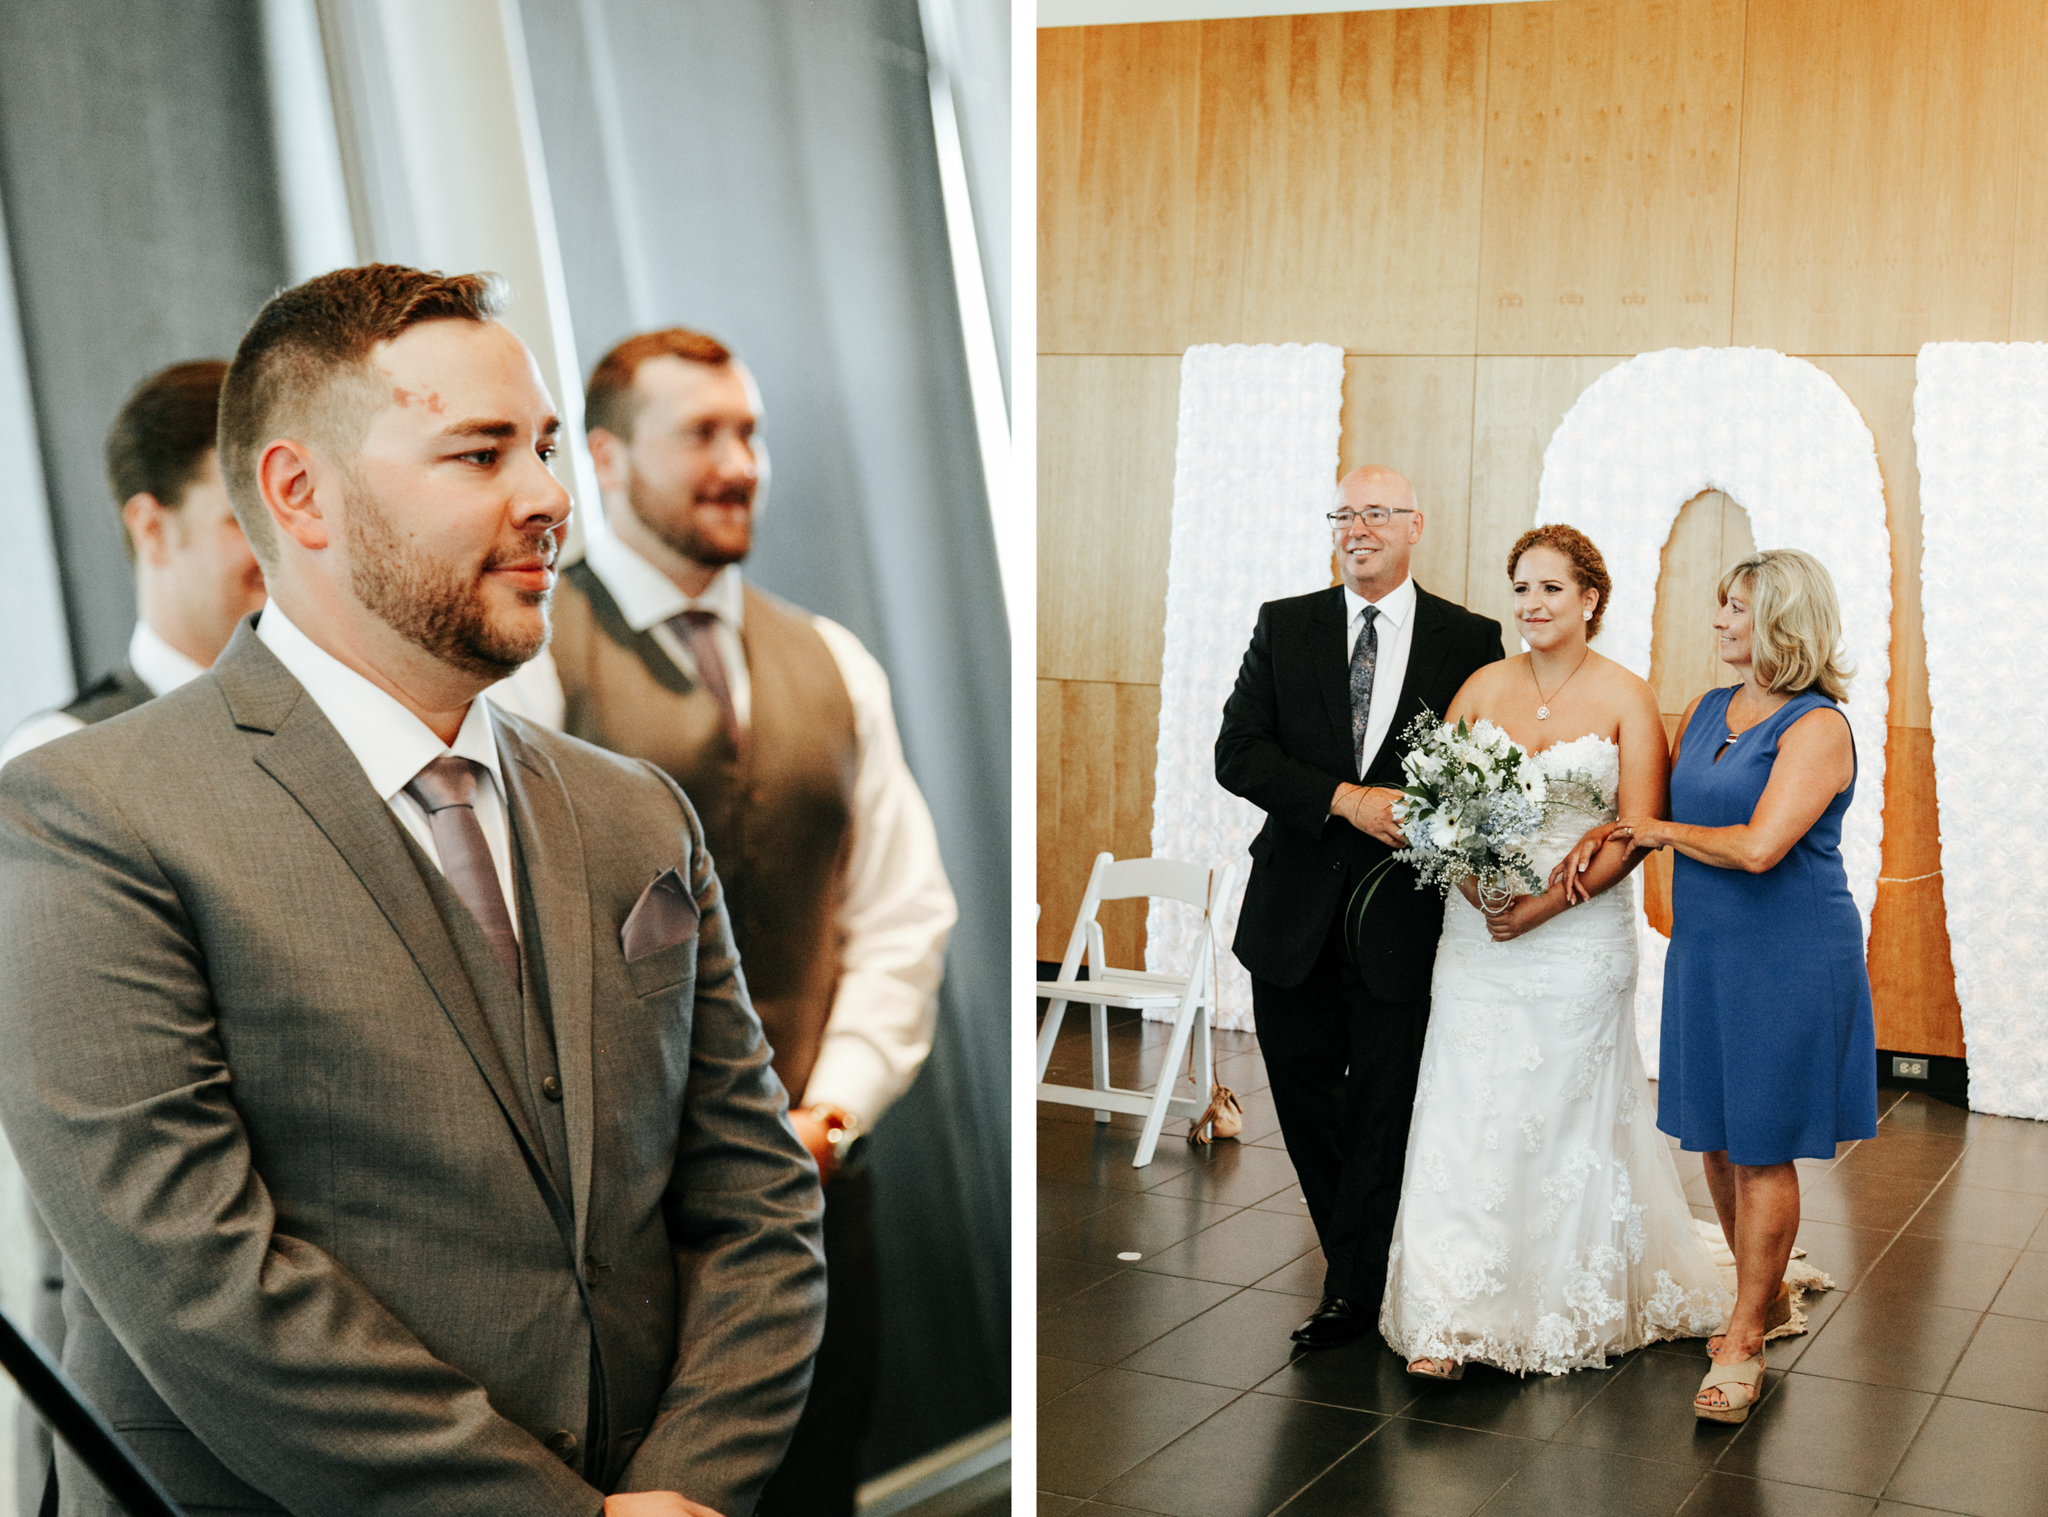 lethbridge-wedding-photographer-love-and-be-loved-photography-trent-danielle-galt-reception-picture-image-photo-82.jpg